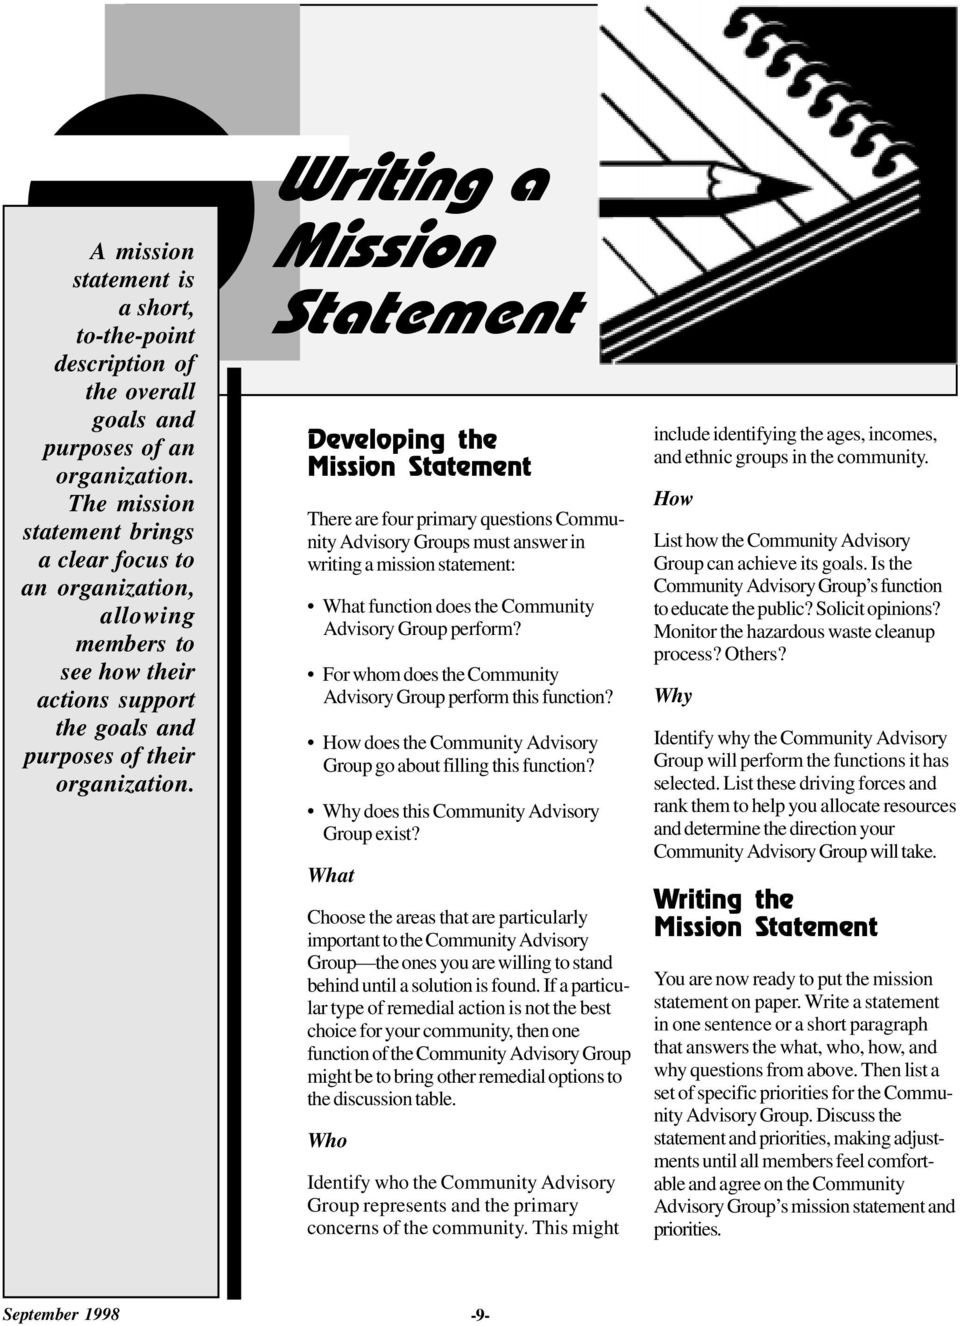 Writing a Mission Statement Developing the Mission Statement There are four primary questions Community Advisory Groups must answer in writing a mission statement: What function does the Community